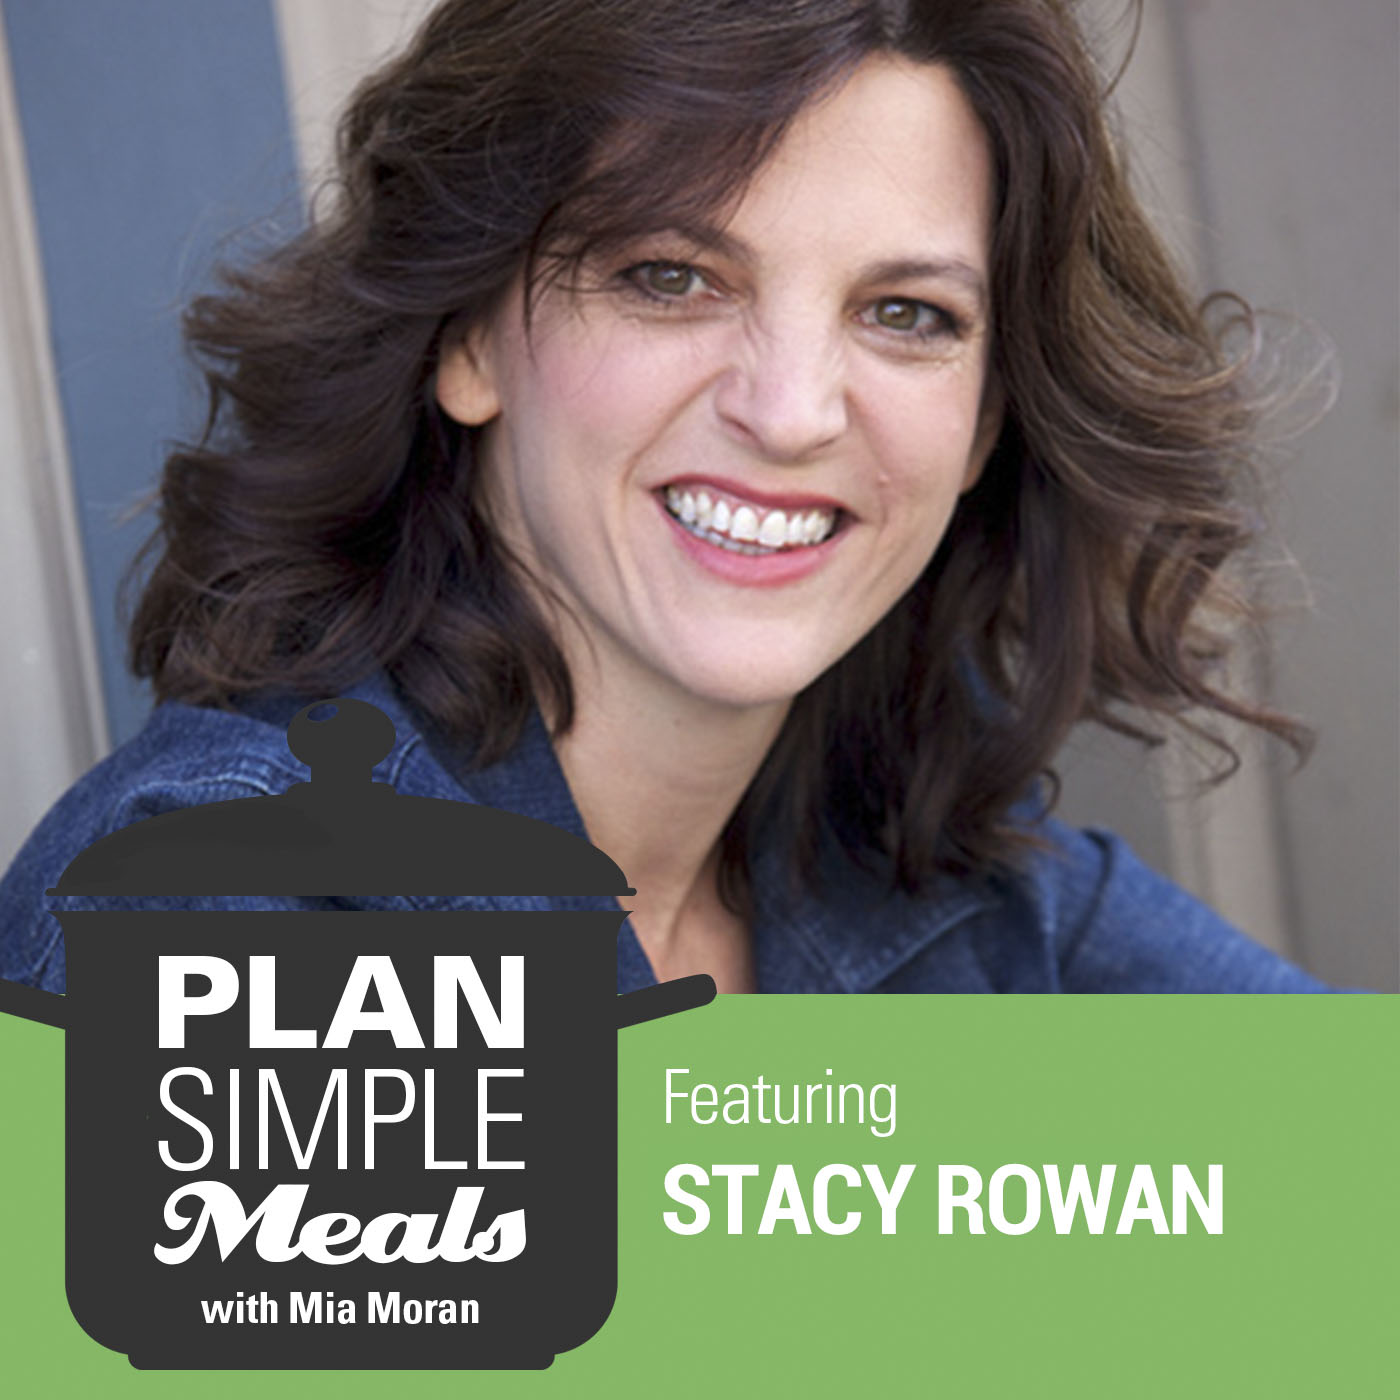 Stacy Rowan